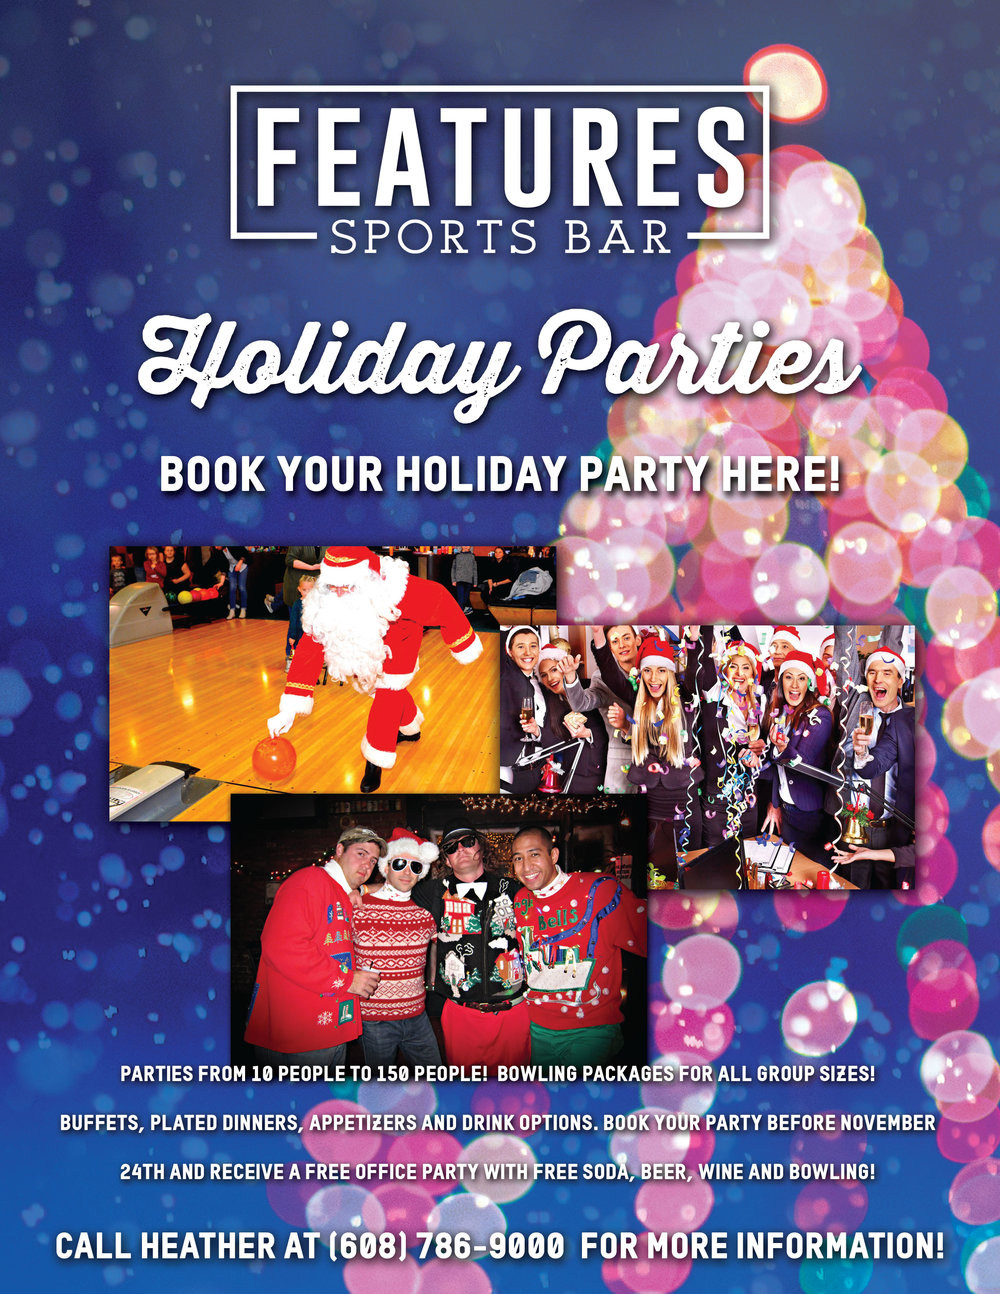 Features_HolidayParty_Flyer.jpg